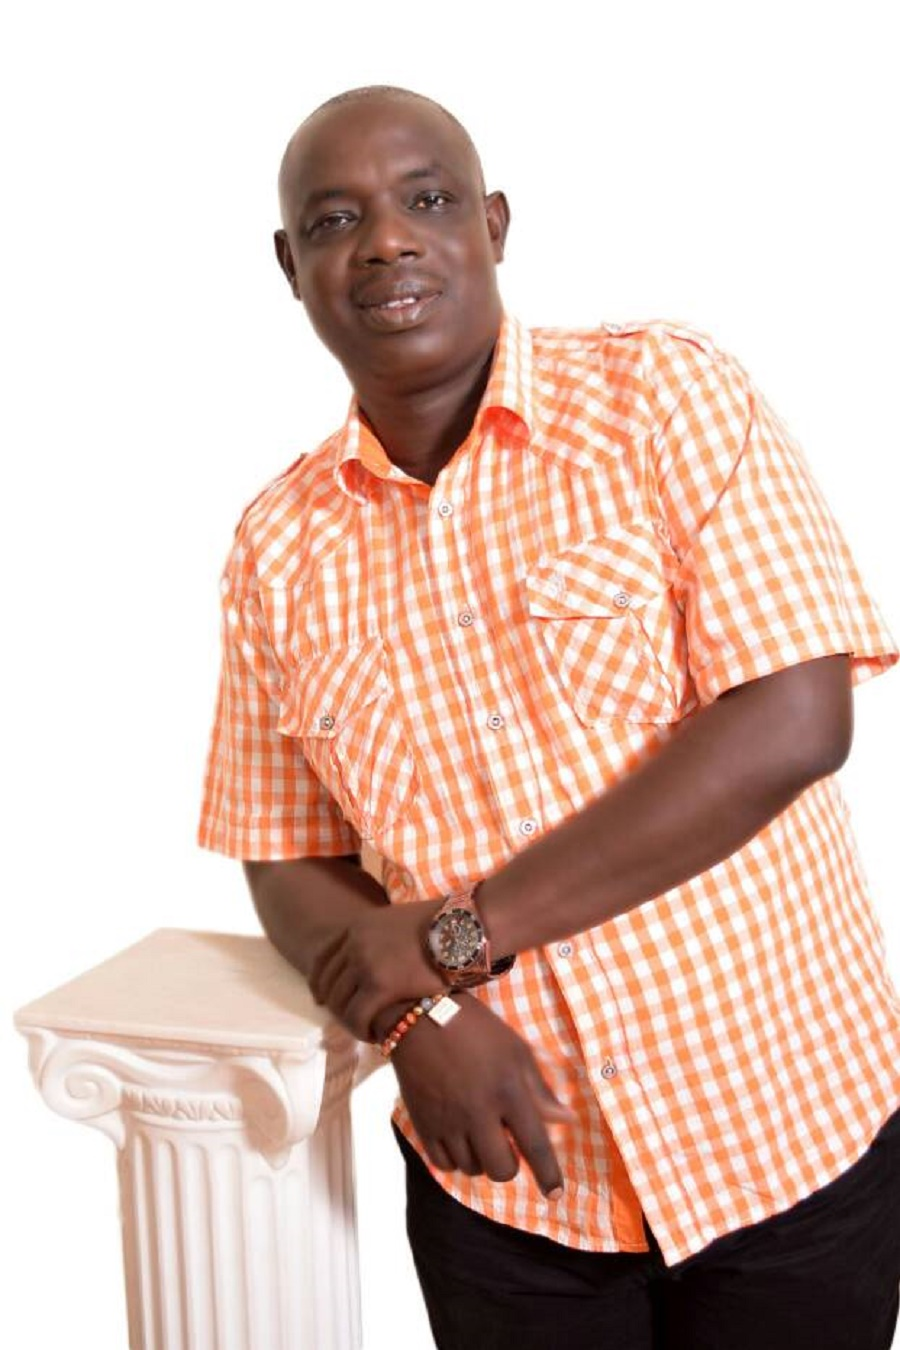 Mr Steve Owiti, an ODM candidate vying for the County Assembly seat for Kolwa East Ward in Kisumu County, Kenya